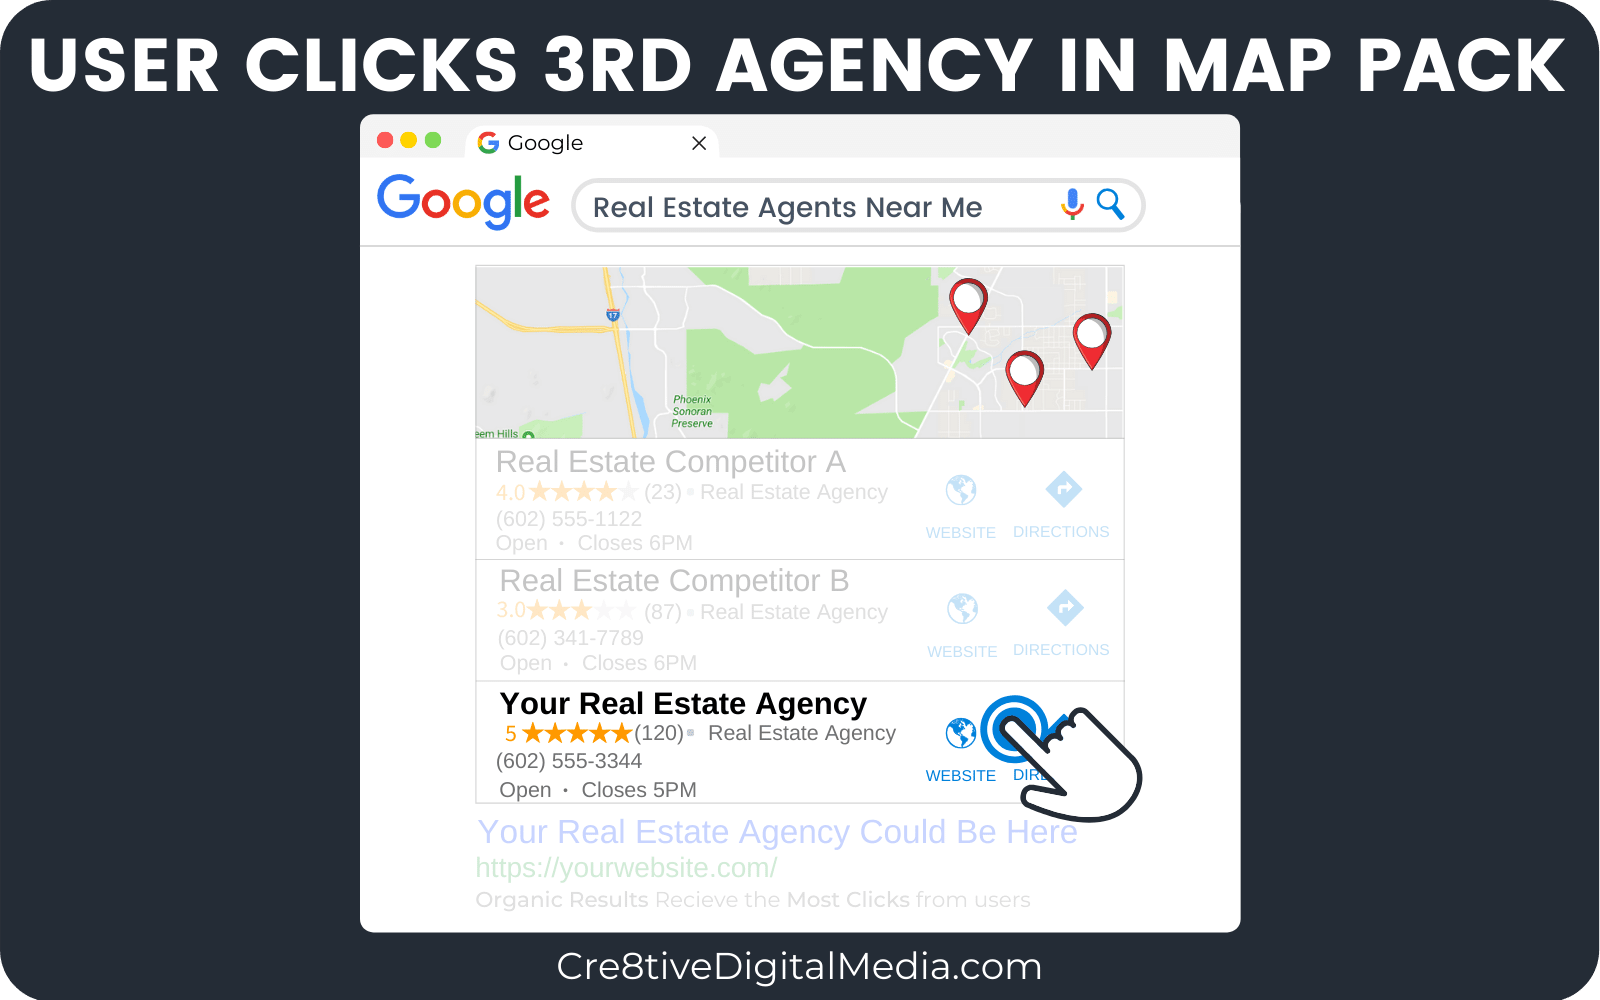 User Clicks on 3rd Real Estate Agency in Map Pack